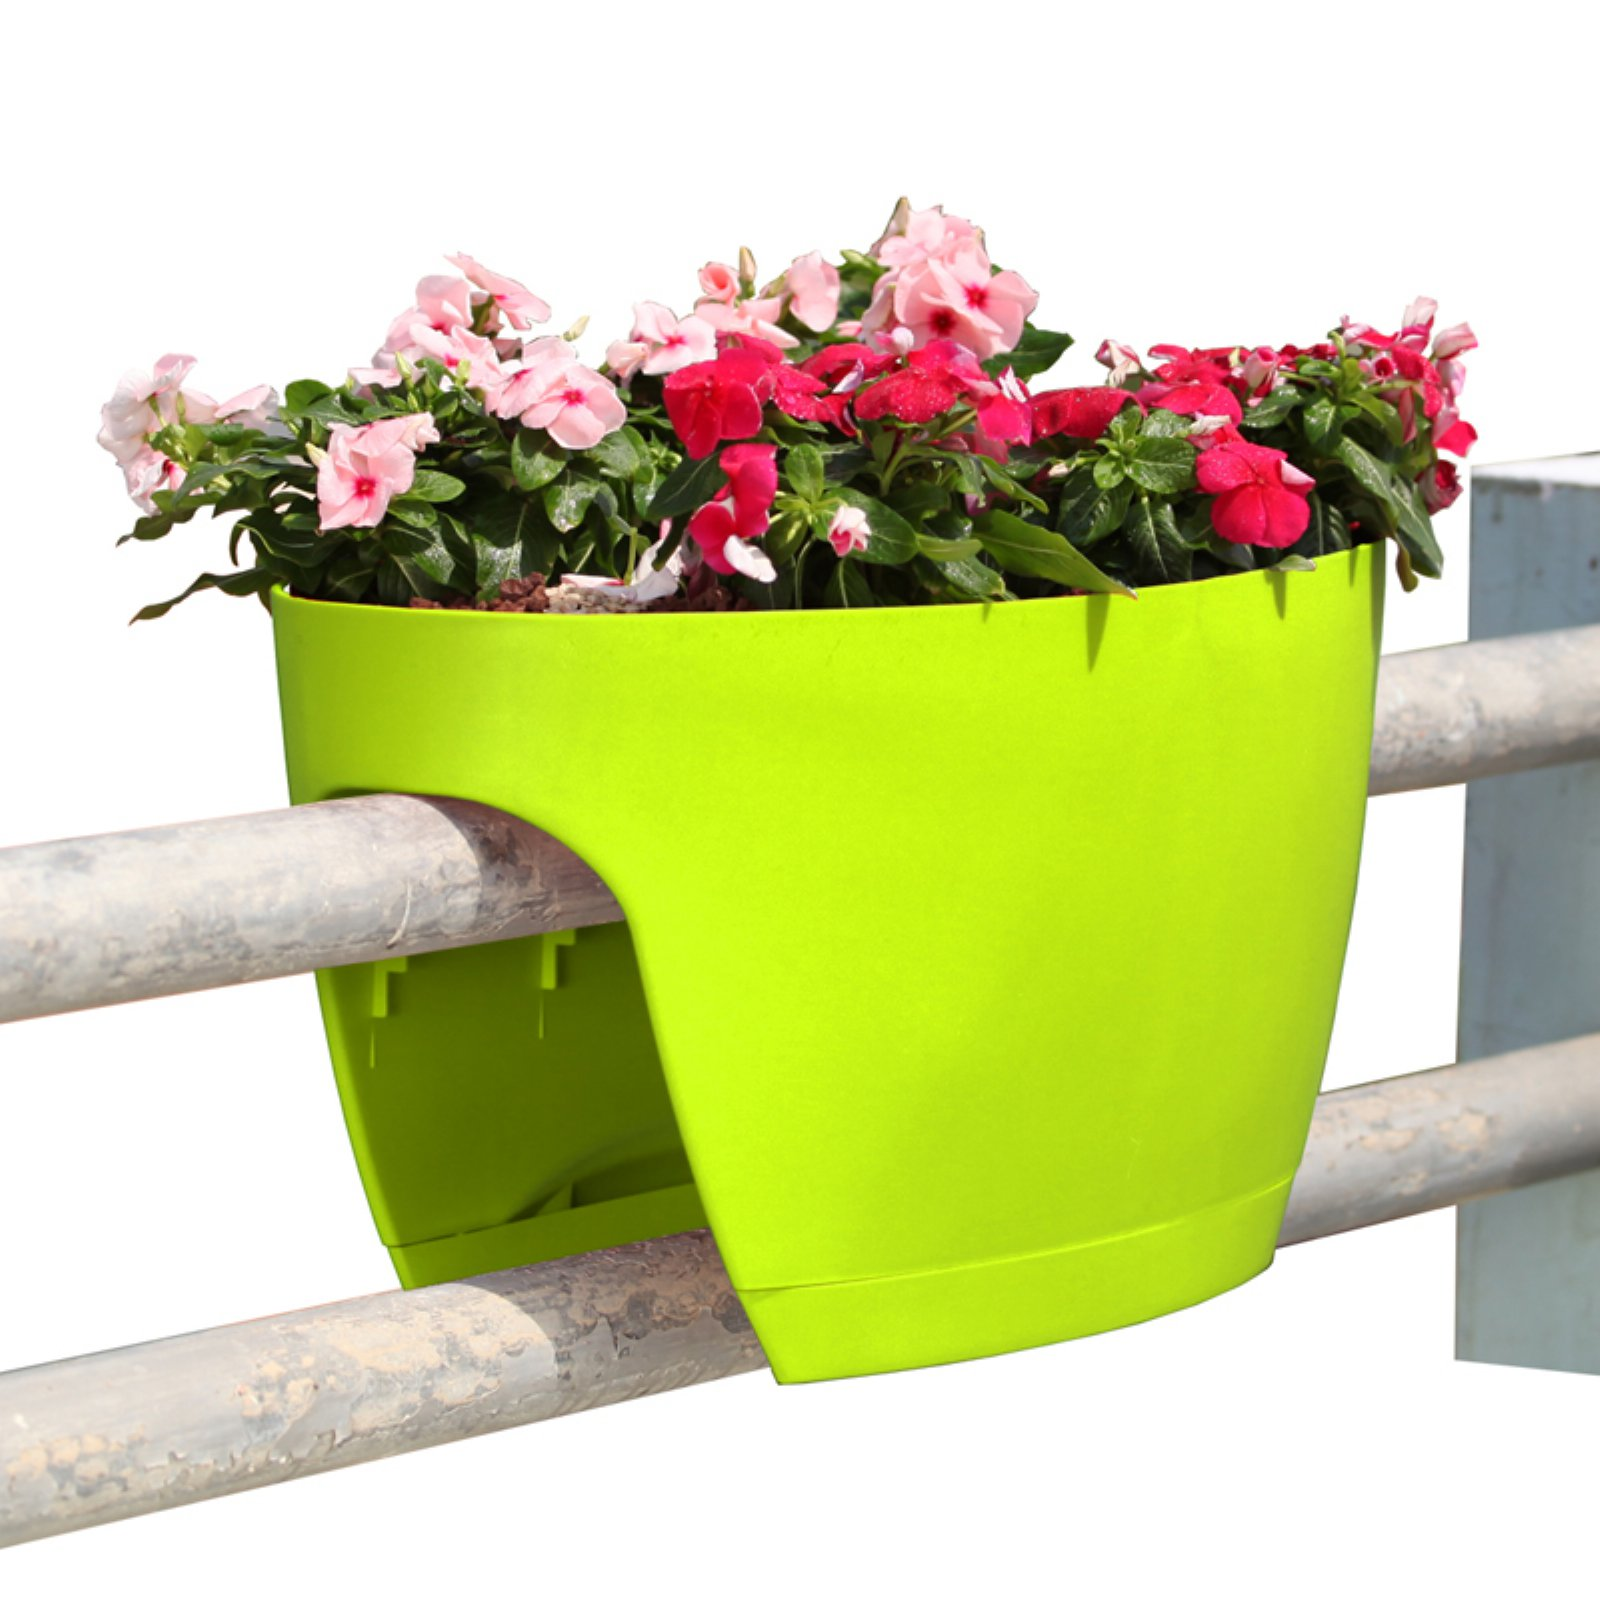 Greenbo Railing Deck and Balcony Planter - Set of 6